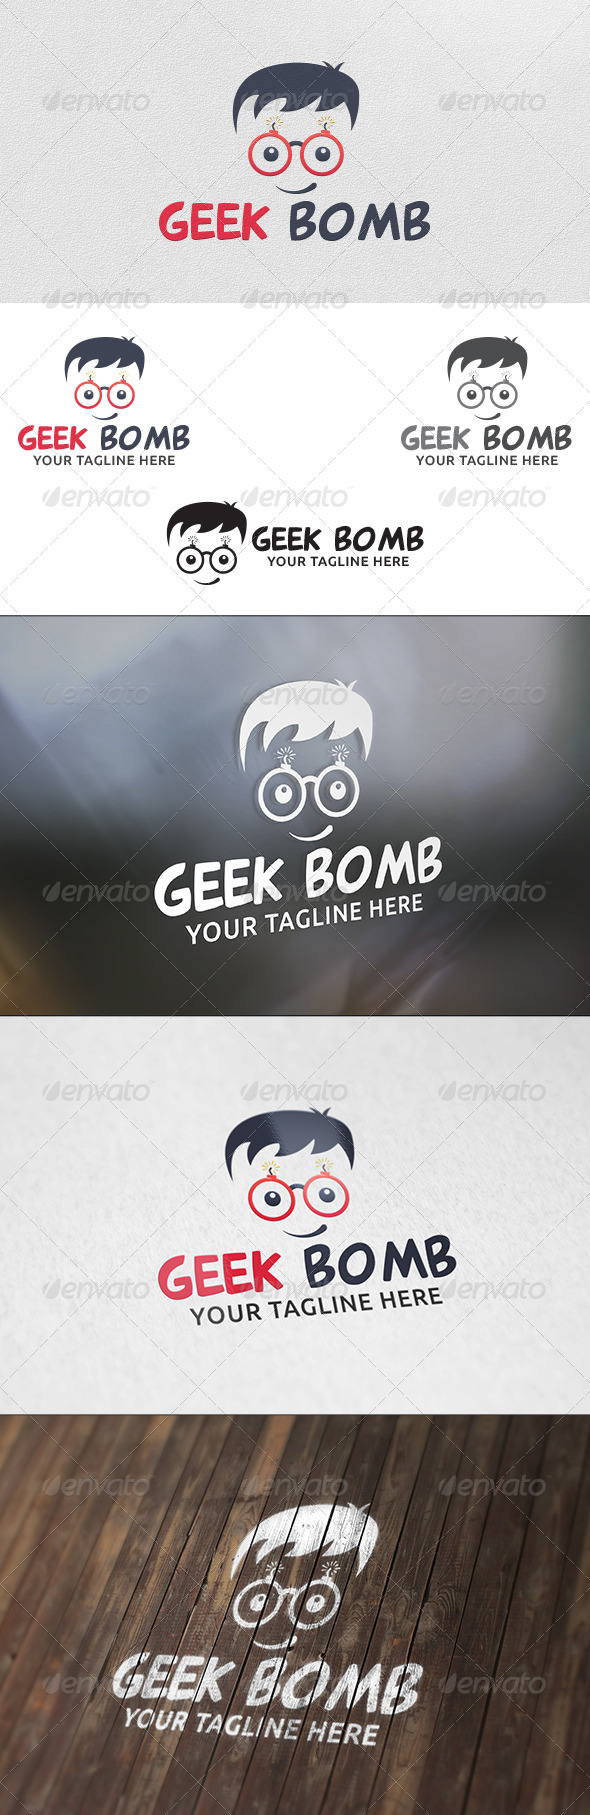 GraphicRiver Geek Bomb Logo Template 6167184